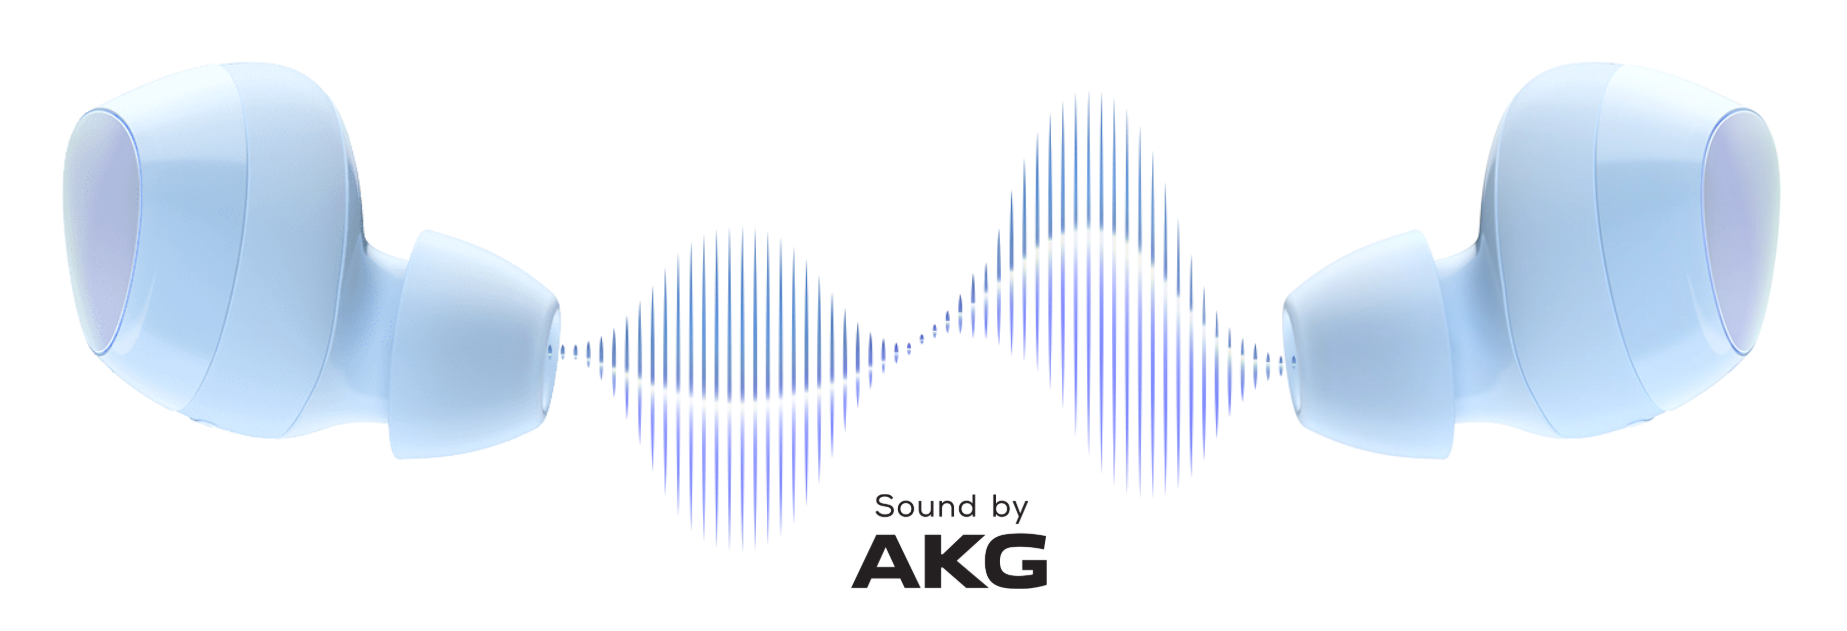 Sound quality that engages. Immerse yourself fully in your music and videos in the balanced and spacious audio crafted by AKG. The dramatic studio quality sound is pure and natural, enhancing listening to podcasts, audiobooks and phone calls.